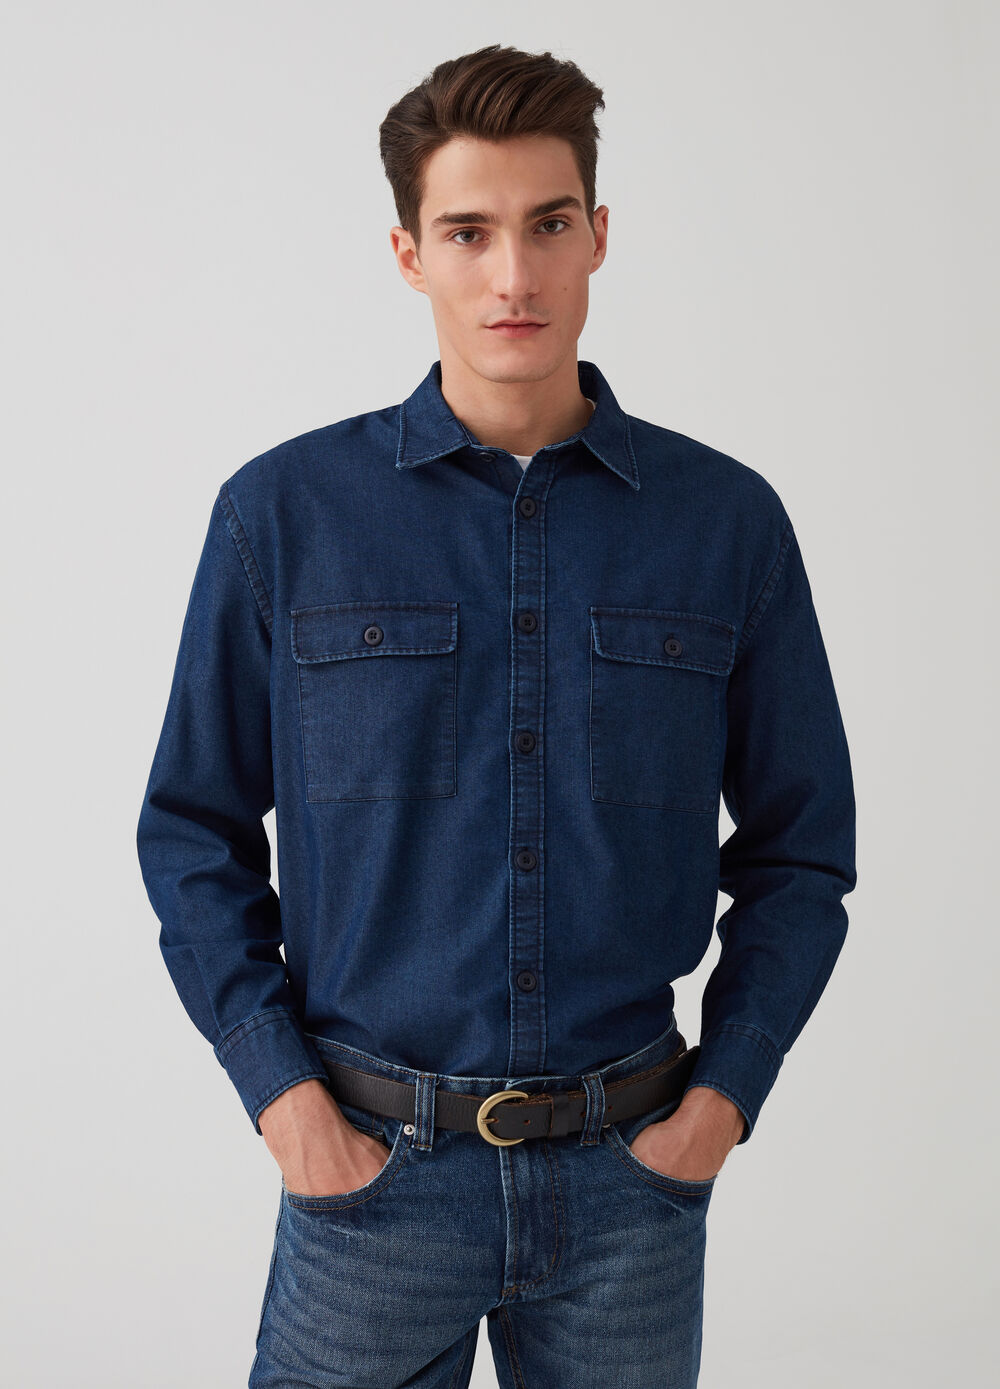 Comfort-fit shirt jacket in denim